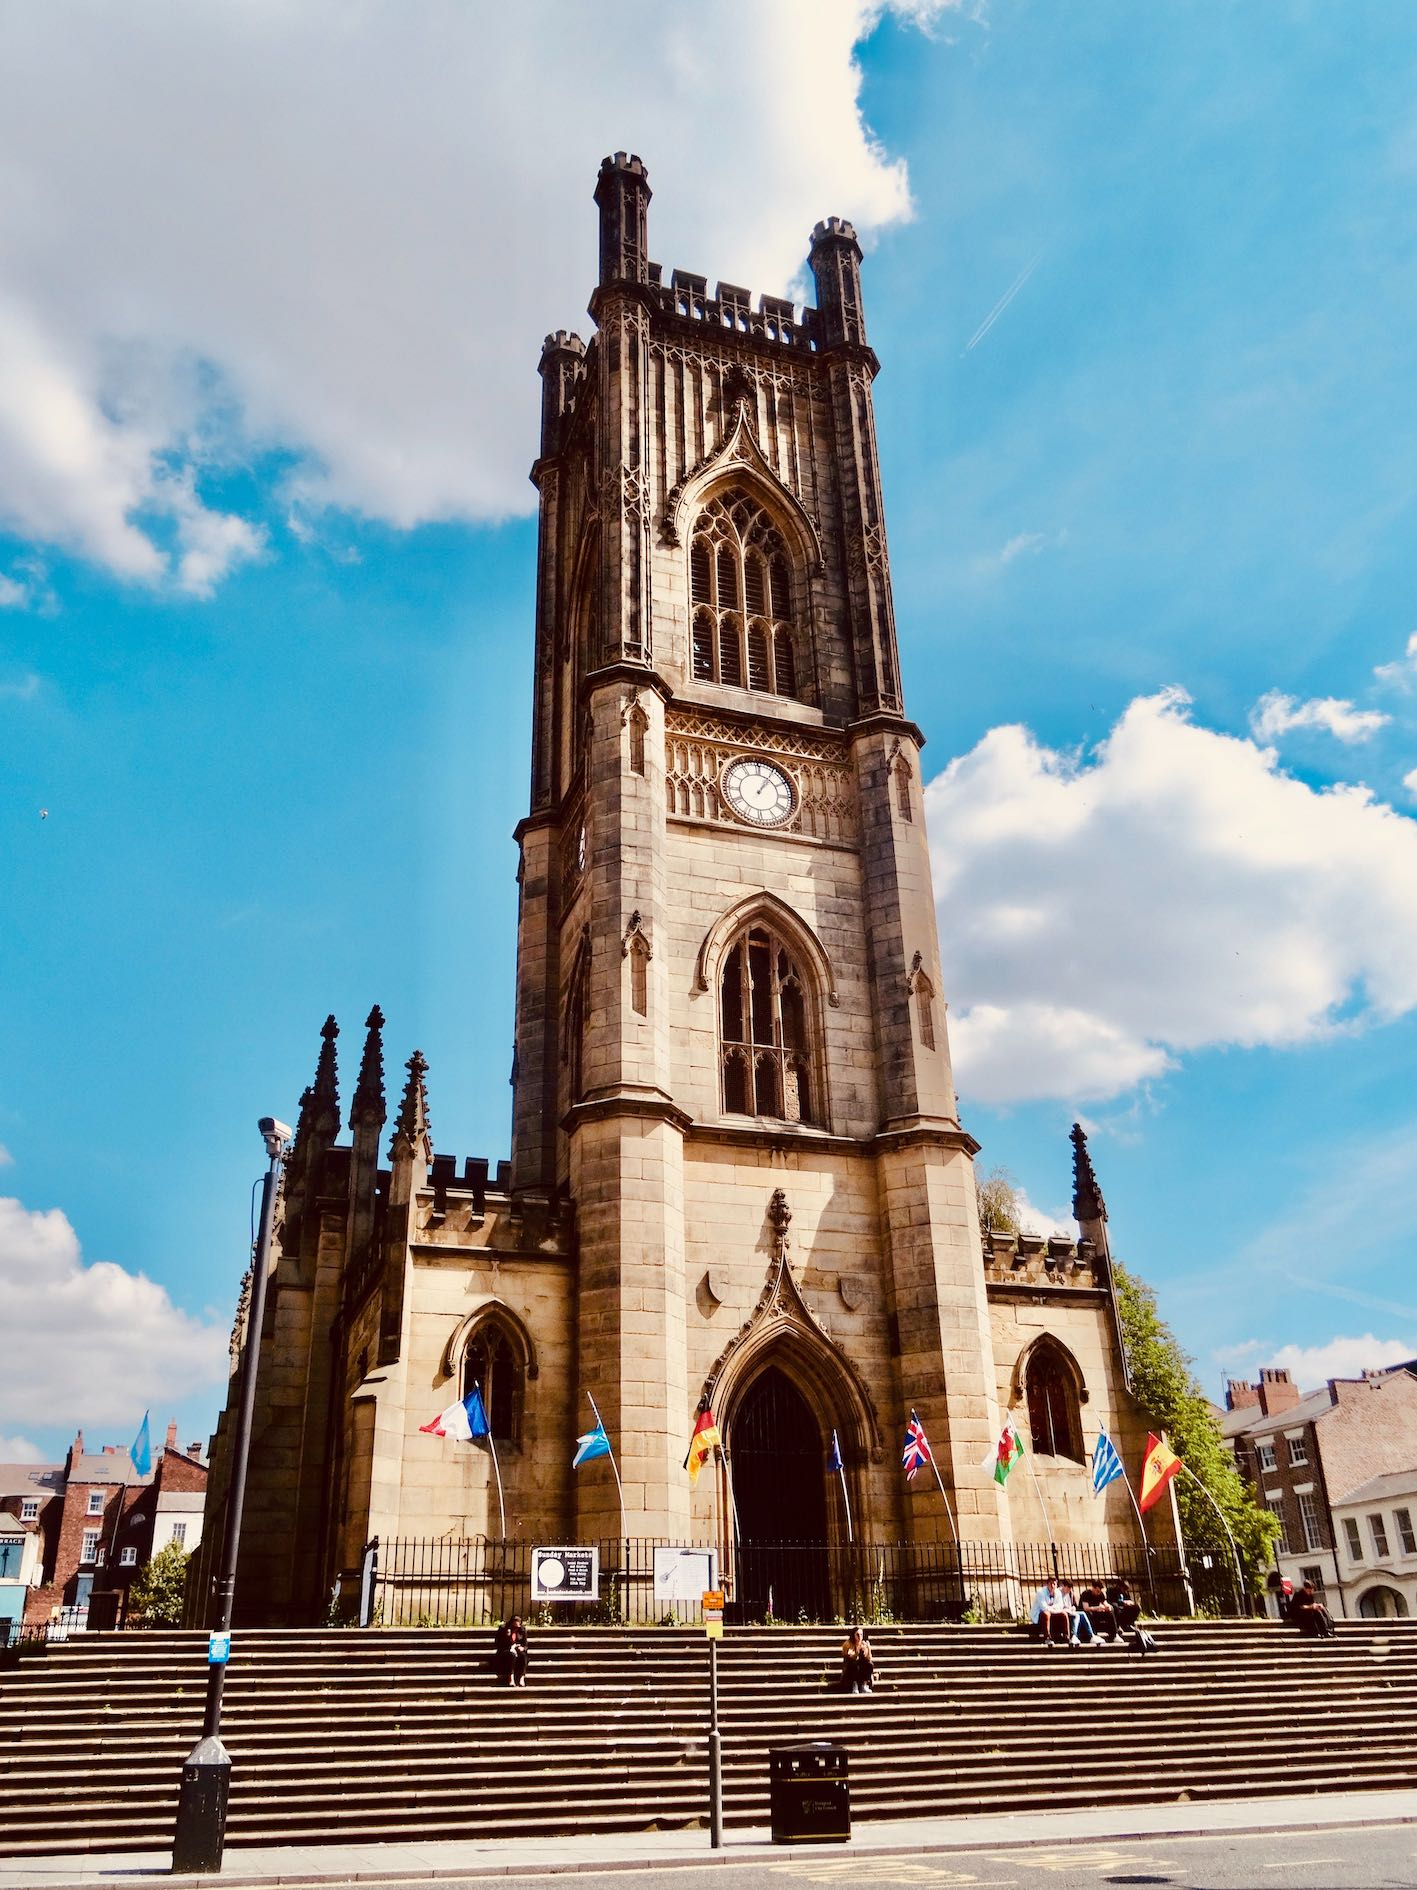 St Luke's Bombed Out Church in Liverpool